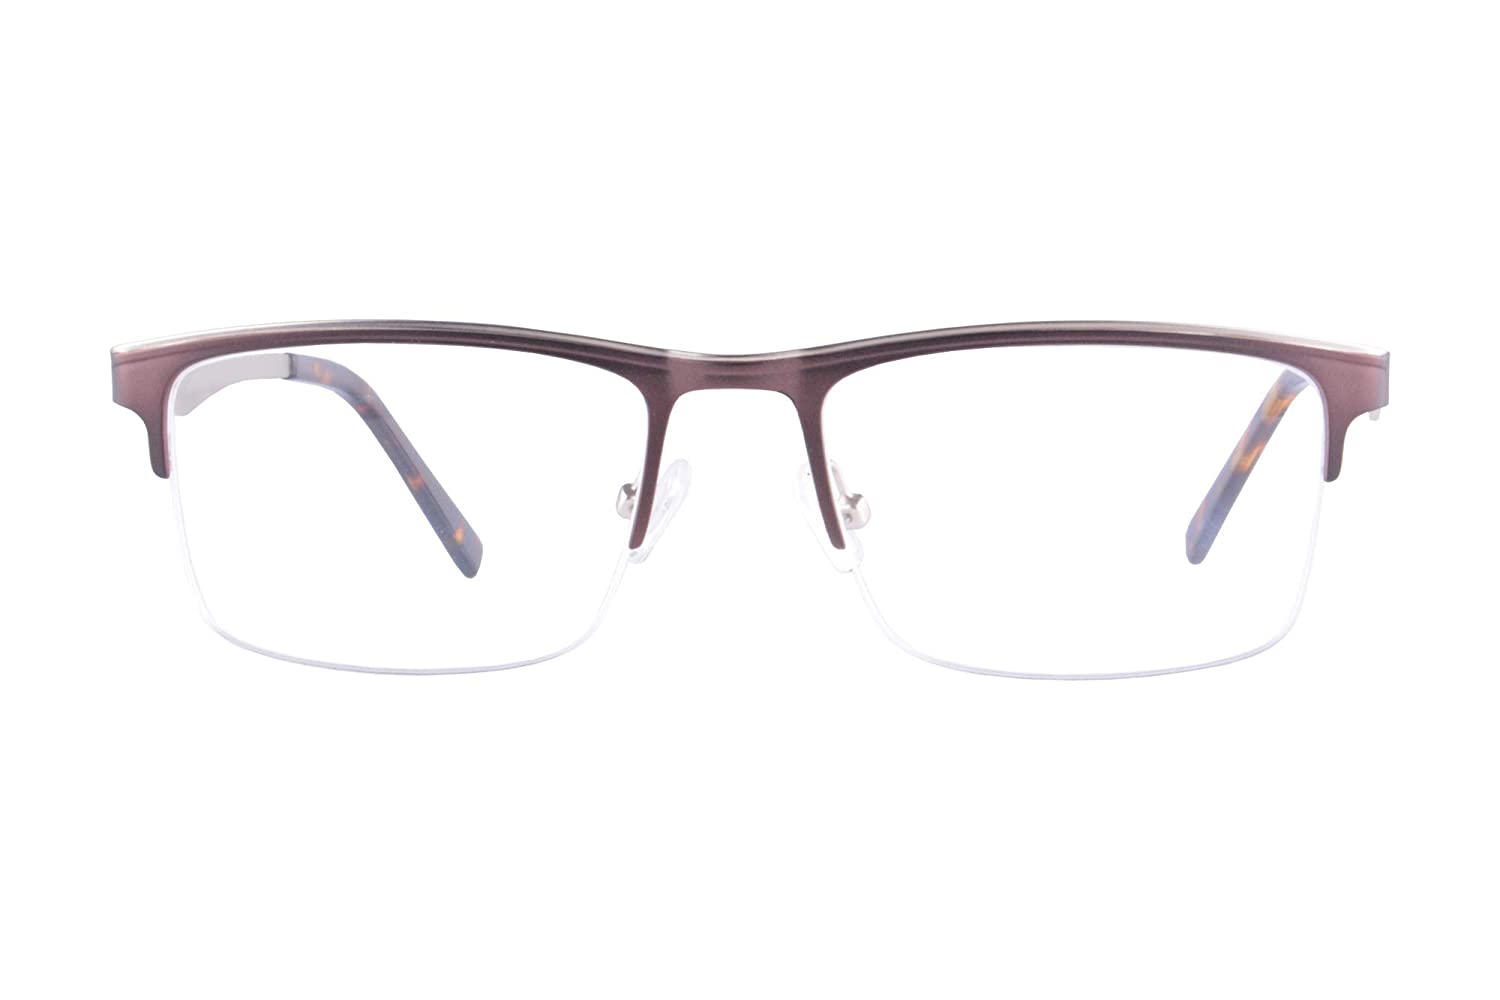 MEDOLONG Anti Blue Filter Transition Shortsighted Glasses-BSJS4090